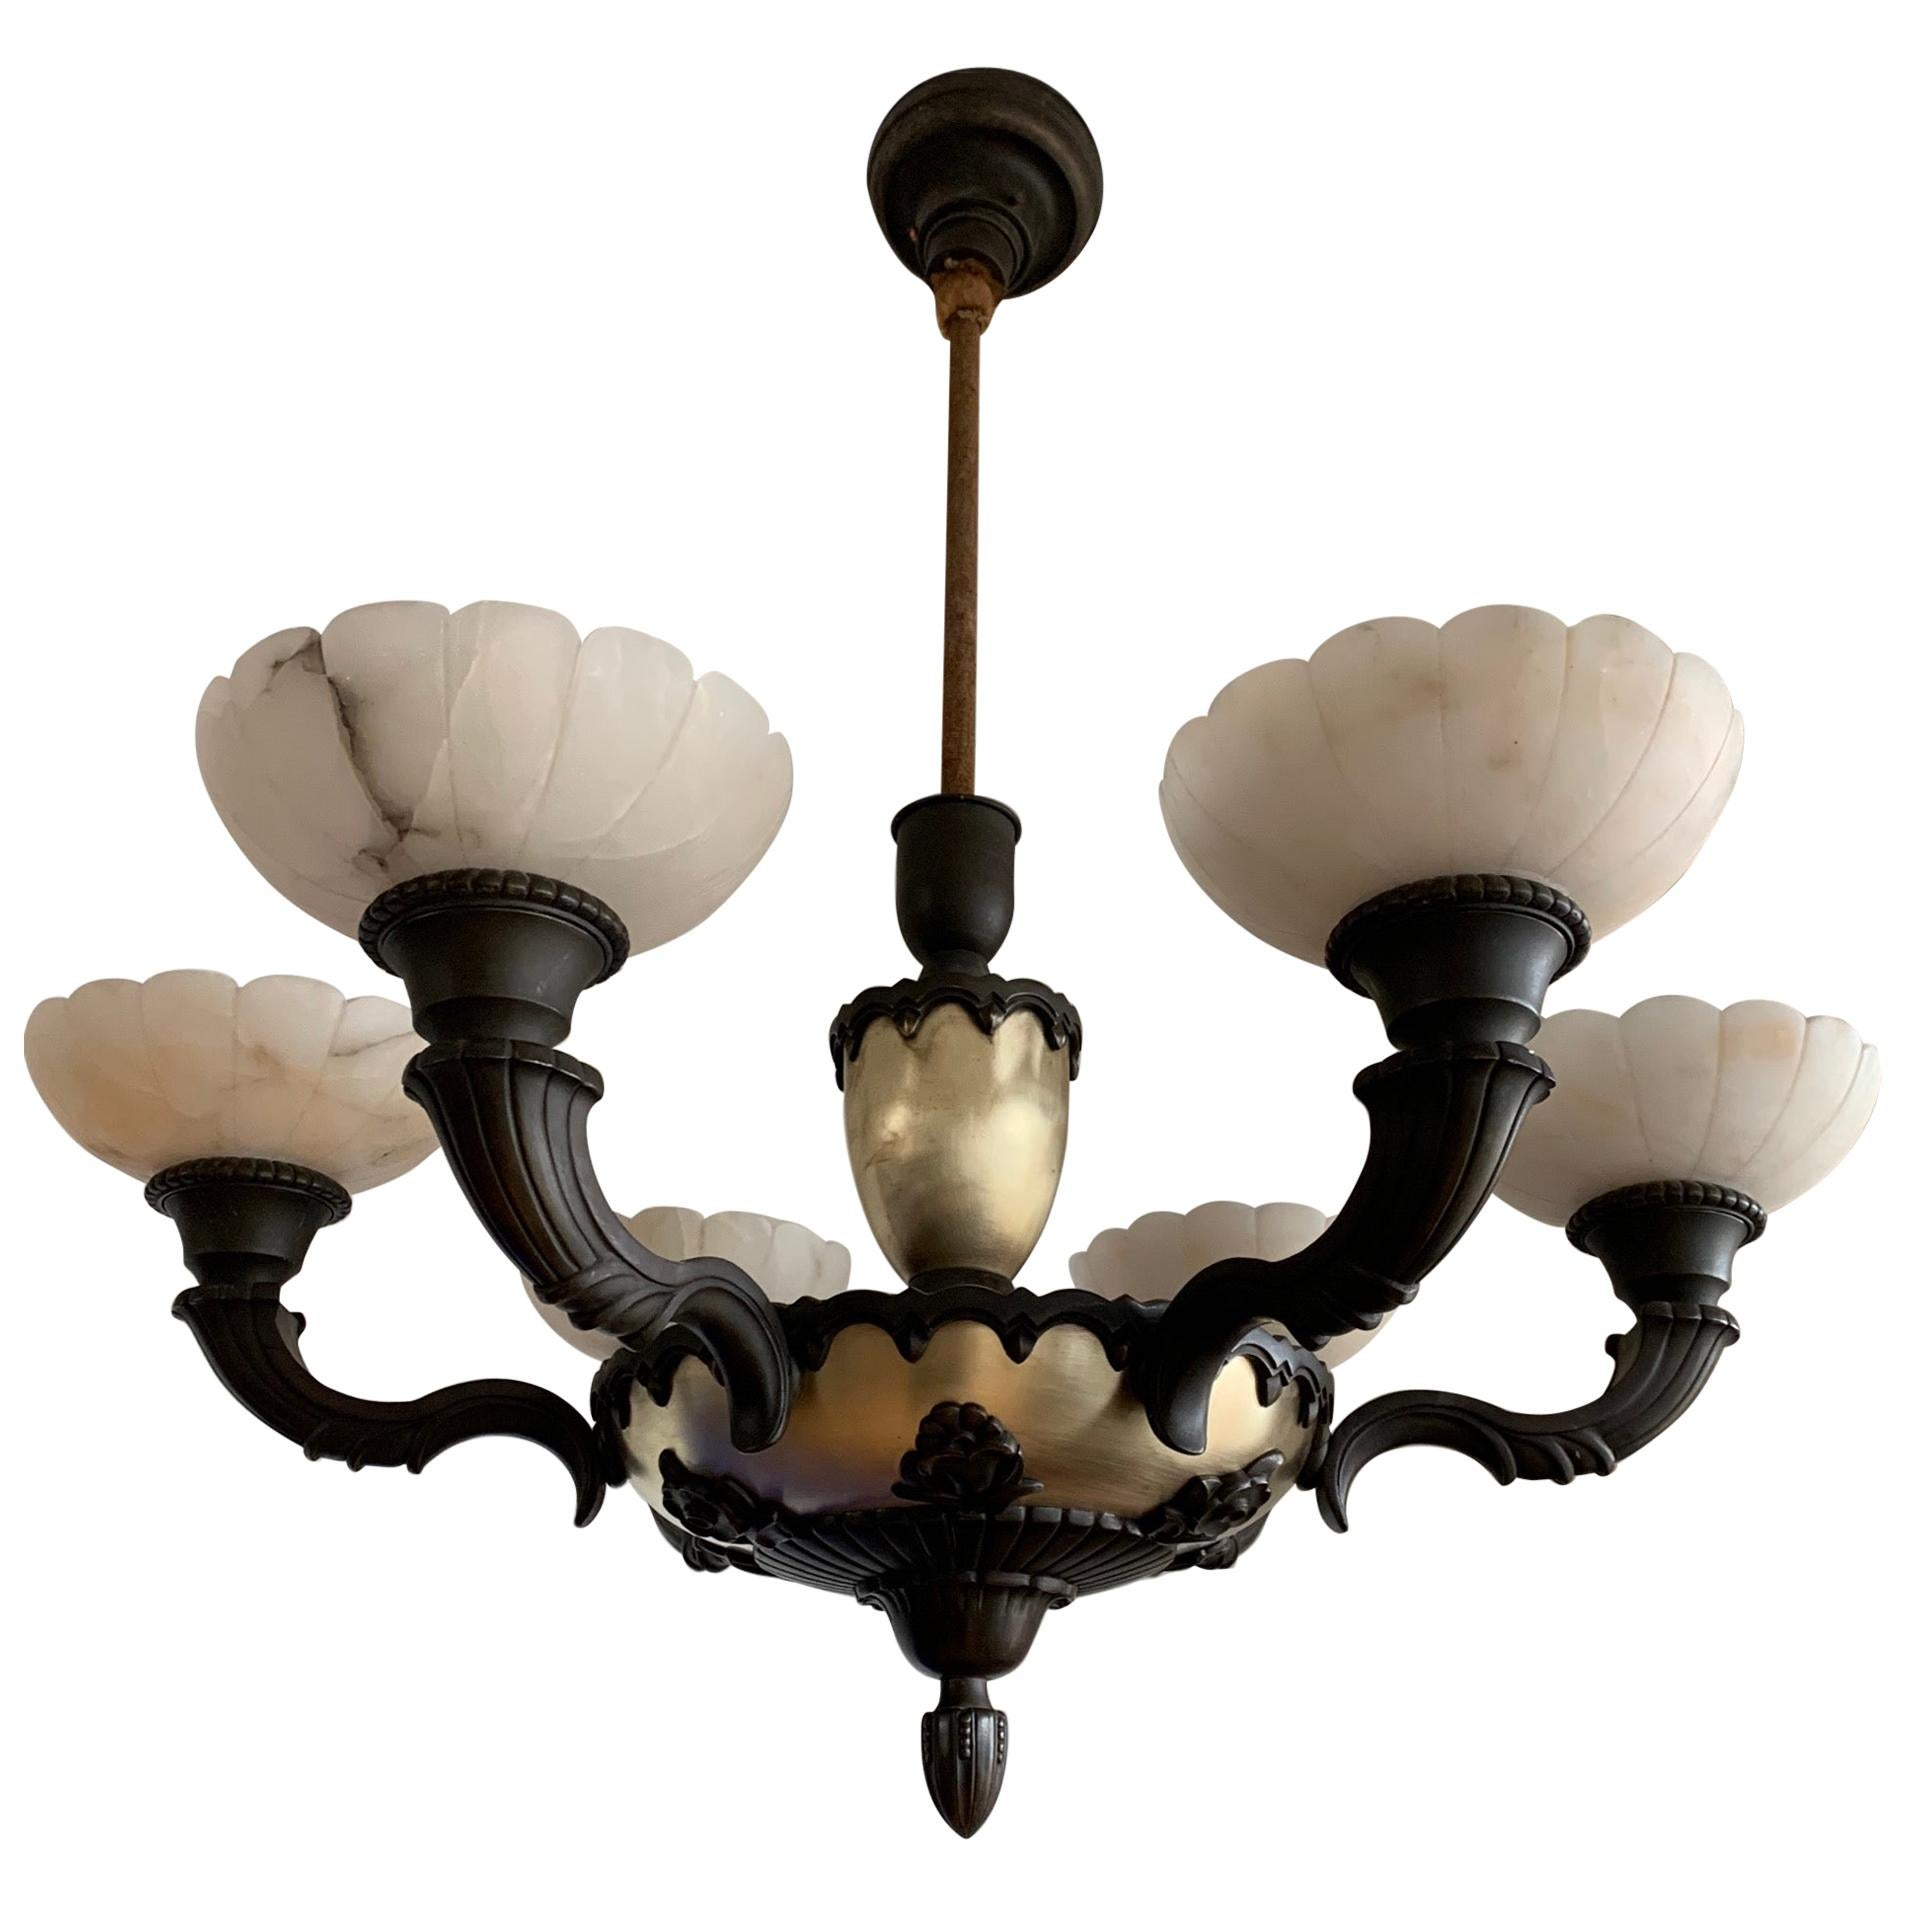 Stylish 1920s Art Deco White Alabaster and Bronze Arms Chandelier Light Fixture